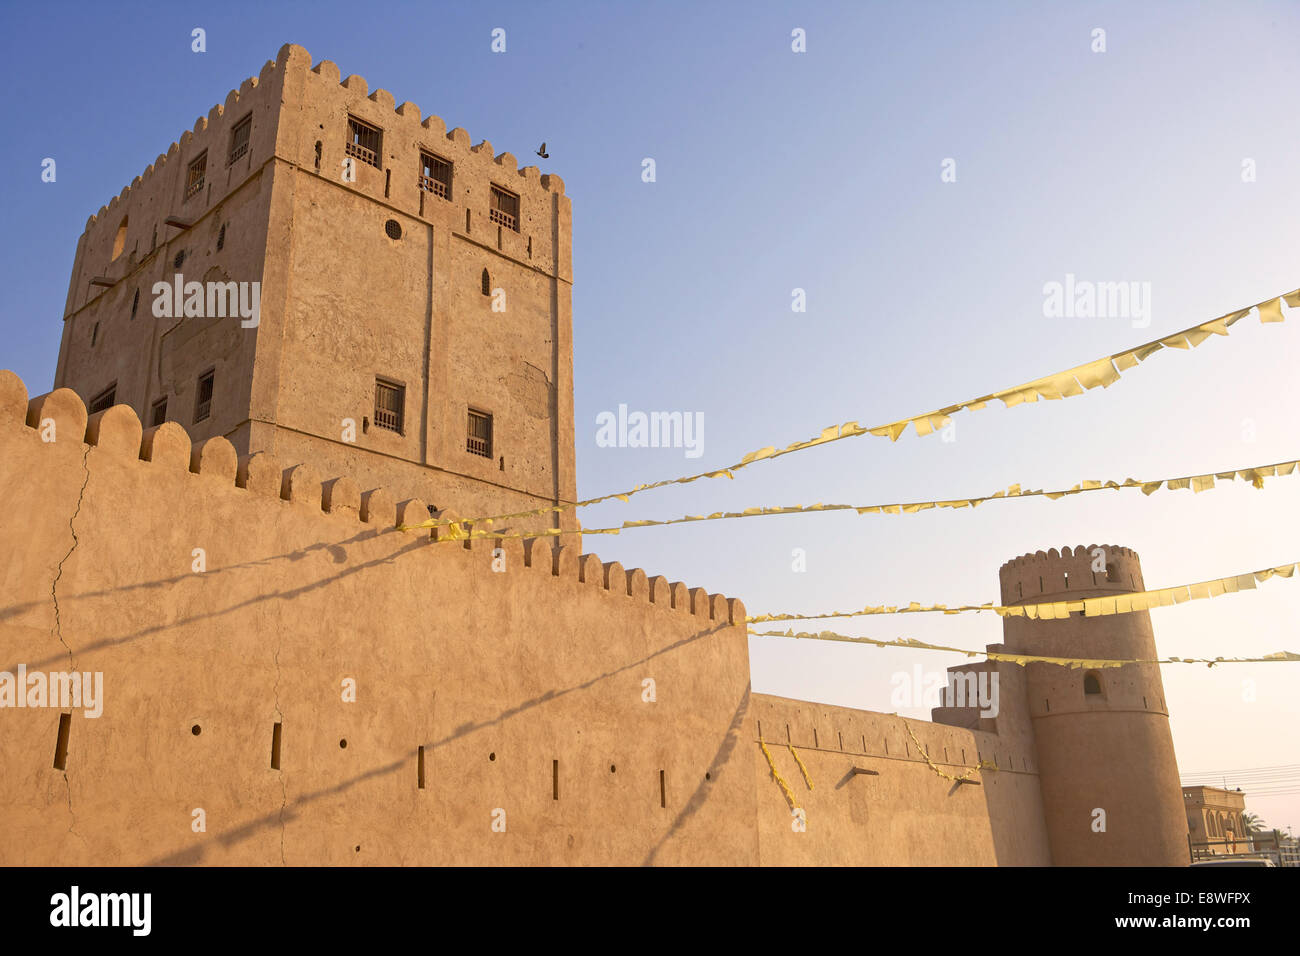 Festive bunting hanging from the castle in the market town of As Suwayq, in the Sultanate of Oman. - Stock Image